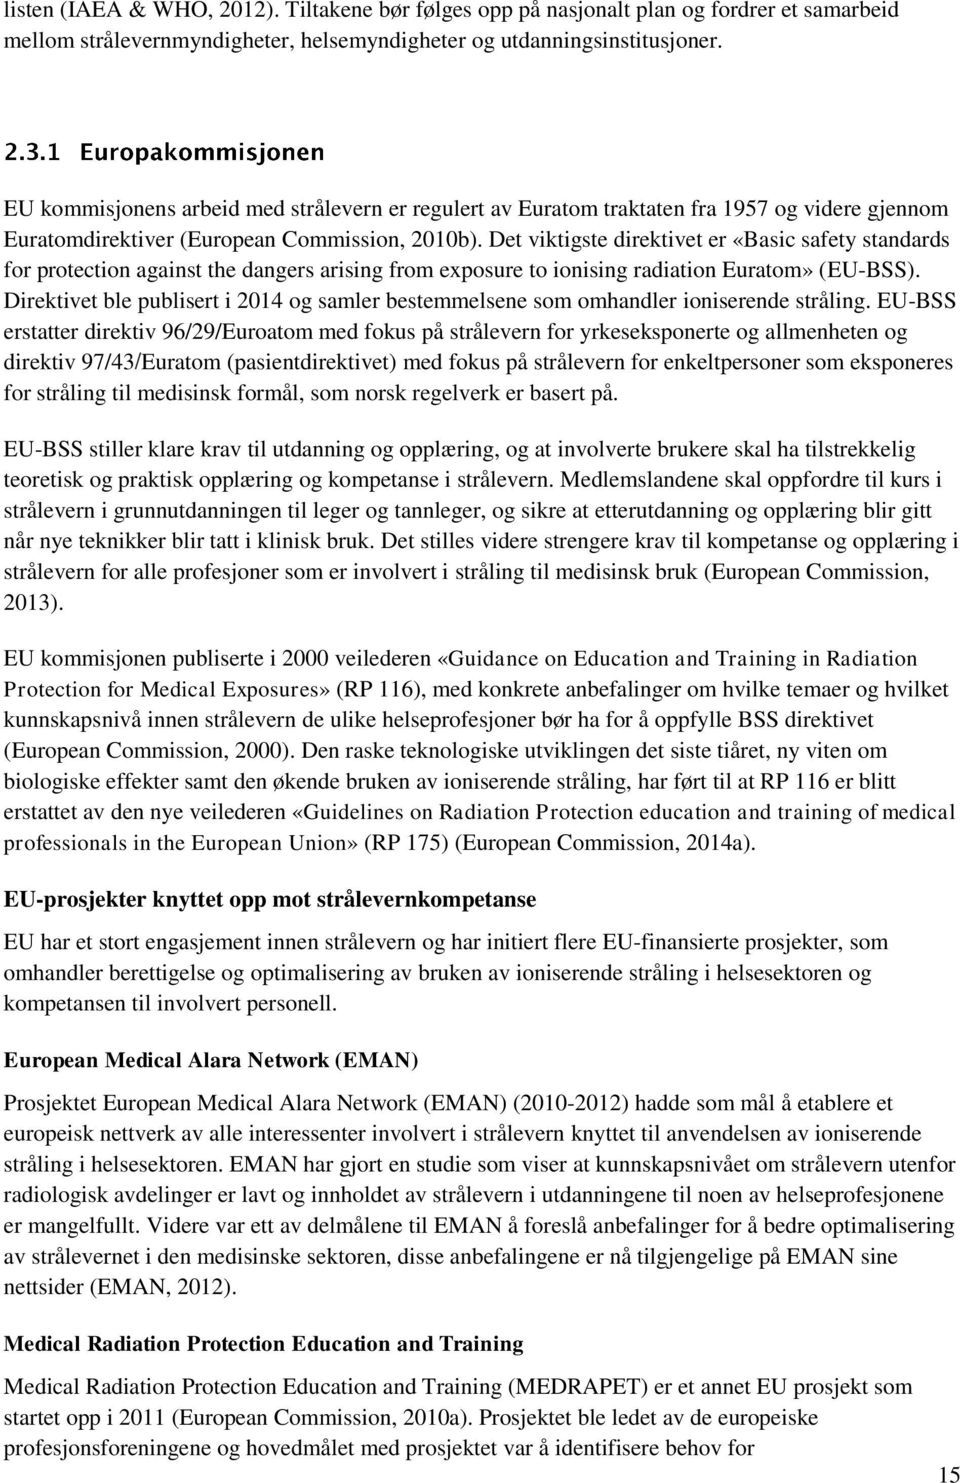 Det viktigste direktivet er «Basic safety standards for protection against the dangers arising from exposure to ionising radiation Euratom» (EU-BSS).